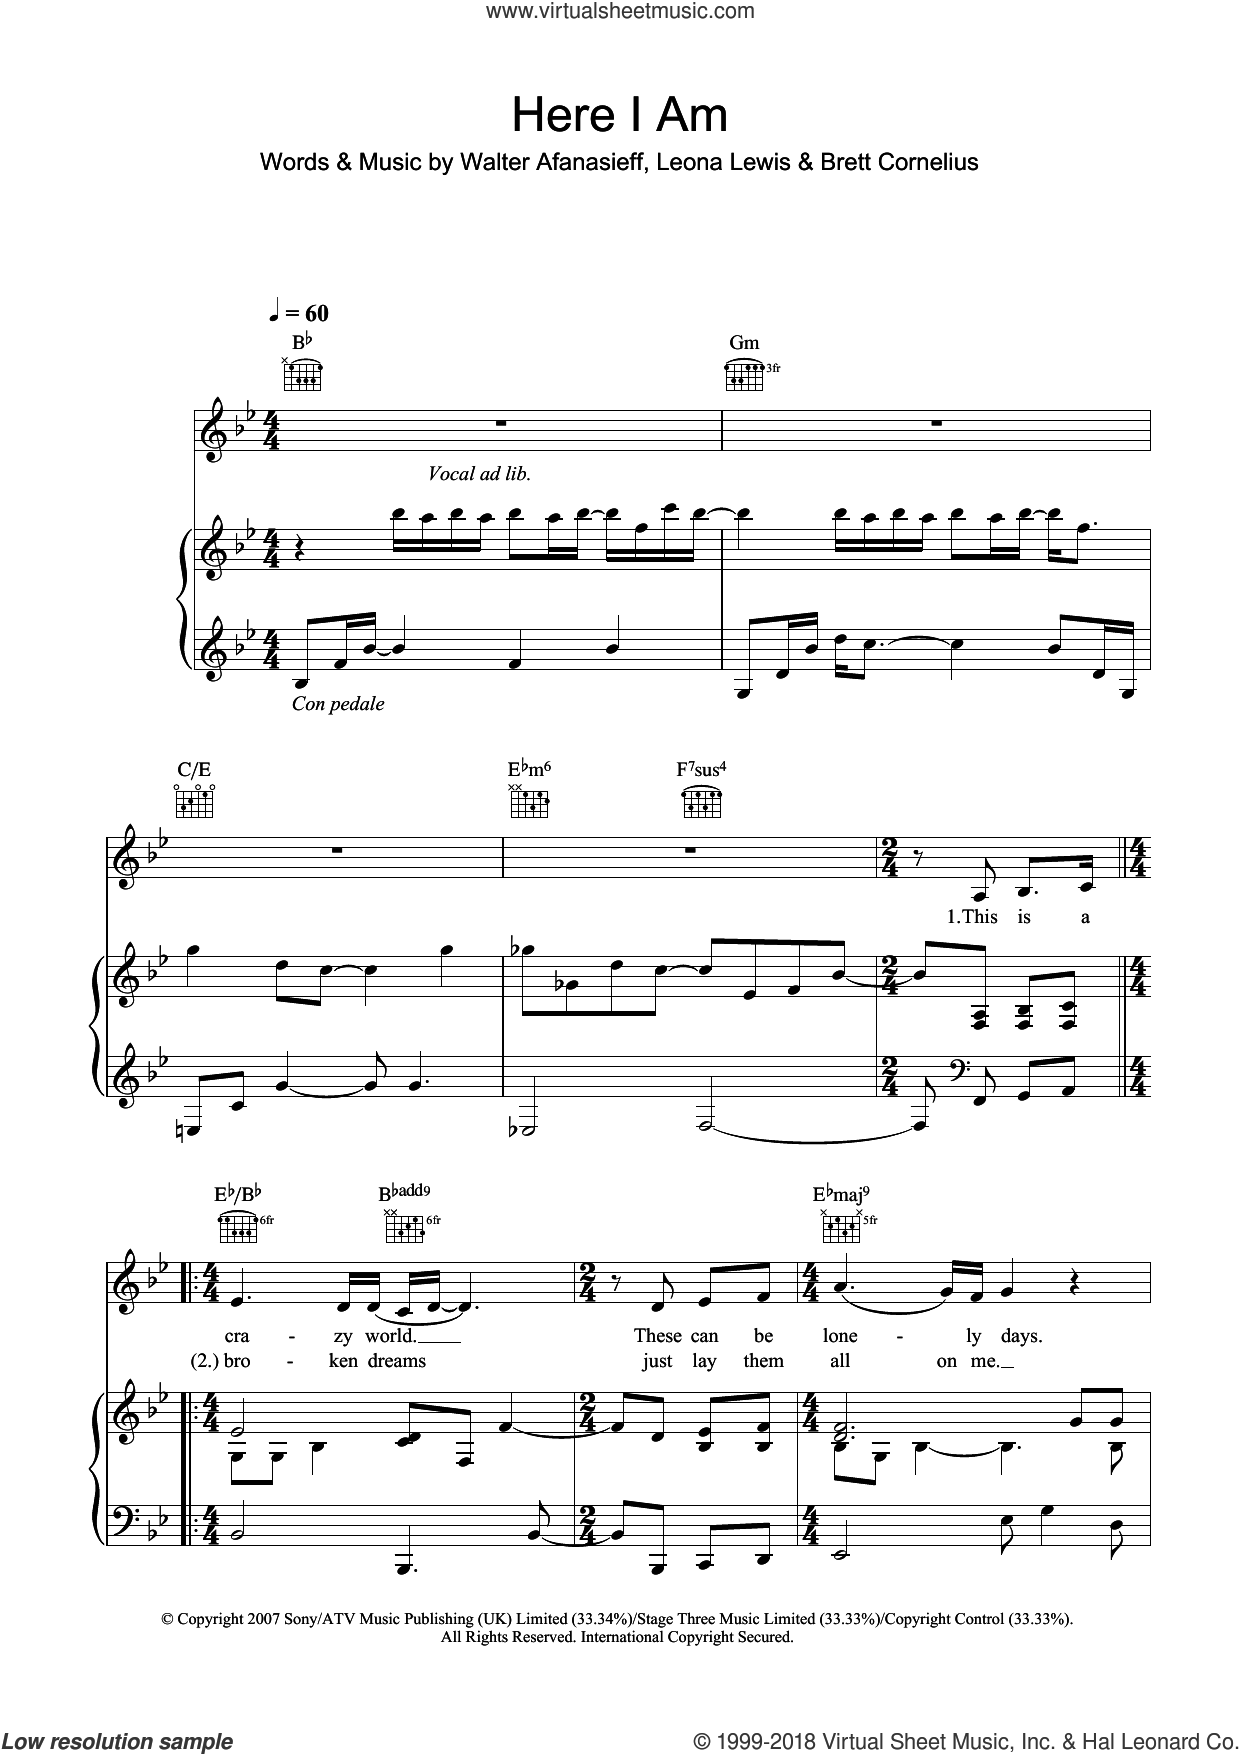 Here I Am sheet music for voice, piano or guitar by Leona Lewis, Brett Cornelius and Walter Afanasieff, intermediate skill level